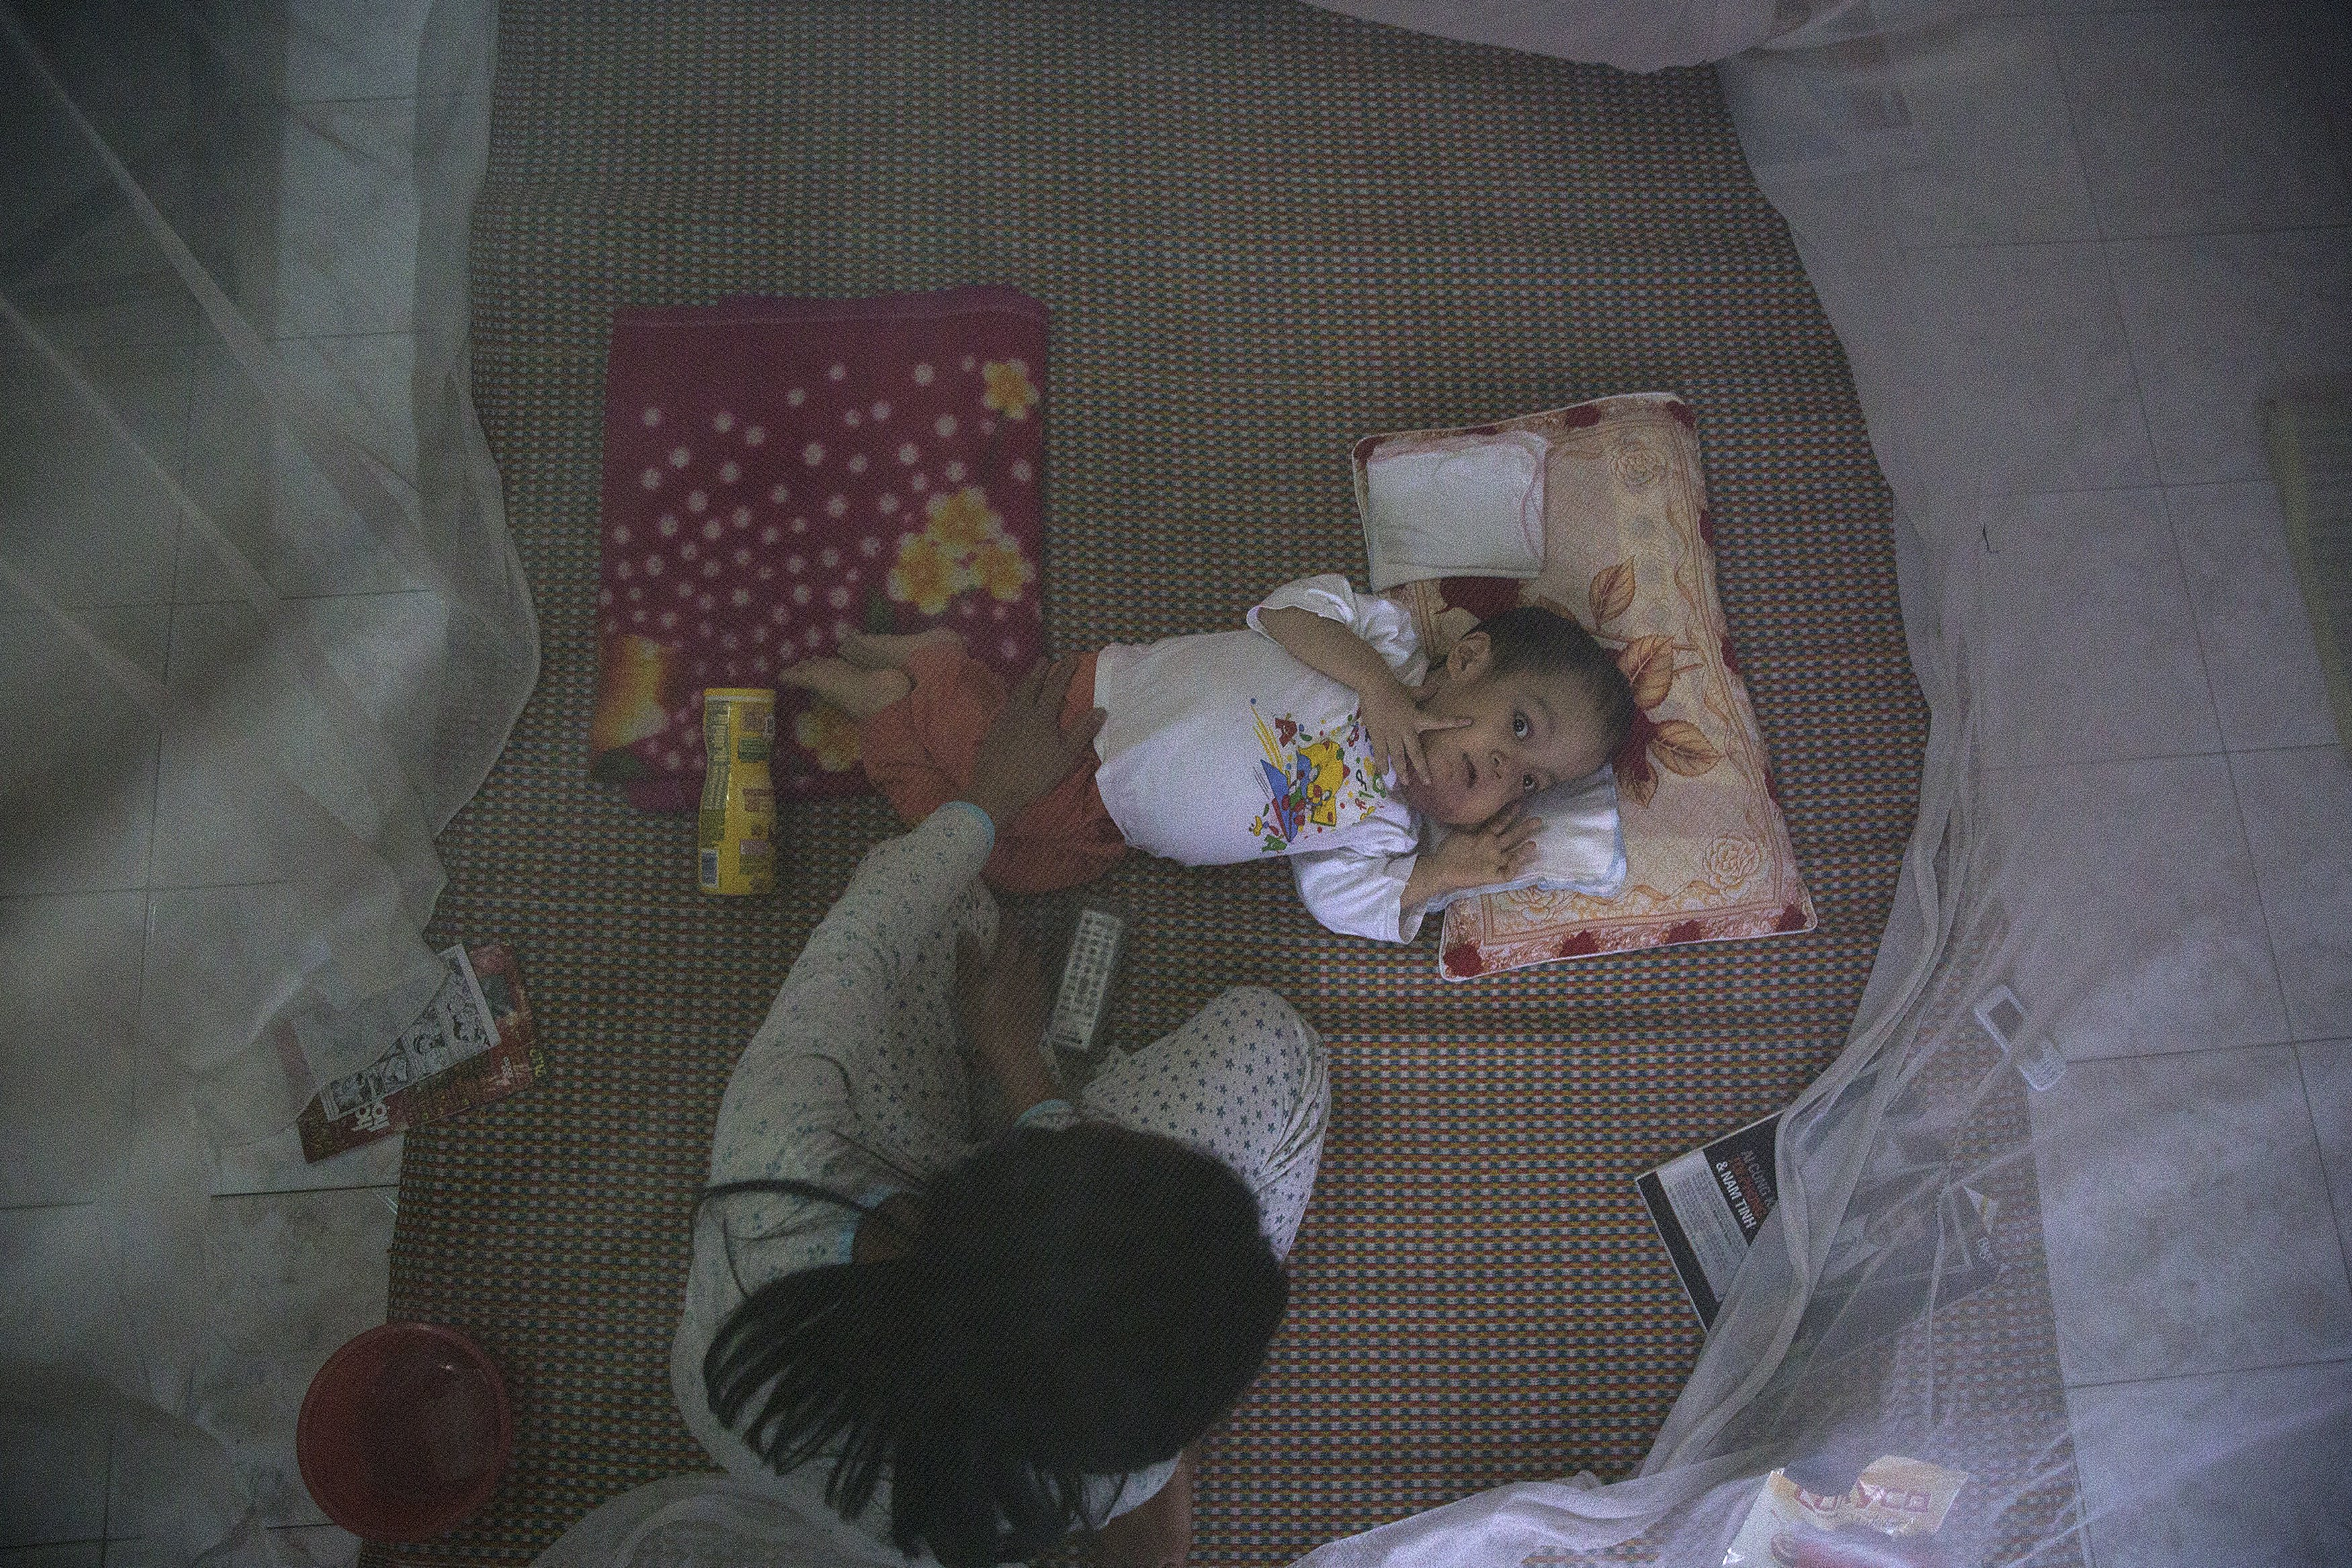 7-year-old Nguyen Van Tuan Tu, who suffers from serious health problems, is looked after by a family member under a mosquito net in their house near the airport in Danang, in central Vietnam April 12, 2015. When Nguyen Van Tuan Tu's father started working at Danang International Airport in 1997, he was not aware of the health risks associated with Agent Orange and he collected fish and snails from a contaminated lake nearby for the family to eat. His first child to be born after he started working at the airport was born in 2000 and died in 2007. Nguyen Van Tuan Tu was born in 2008 with same symptoms as his late sister and doctors and parents believe their health problems are linked to the effects of Agent Orange. The couple have one healthy daughter who was born in 1995, before they started working at the airport, and she is now a university student.